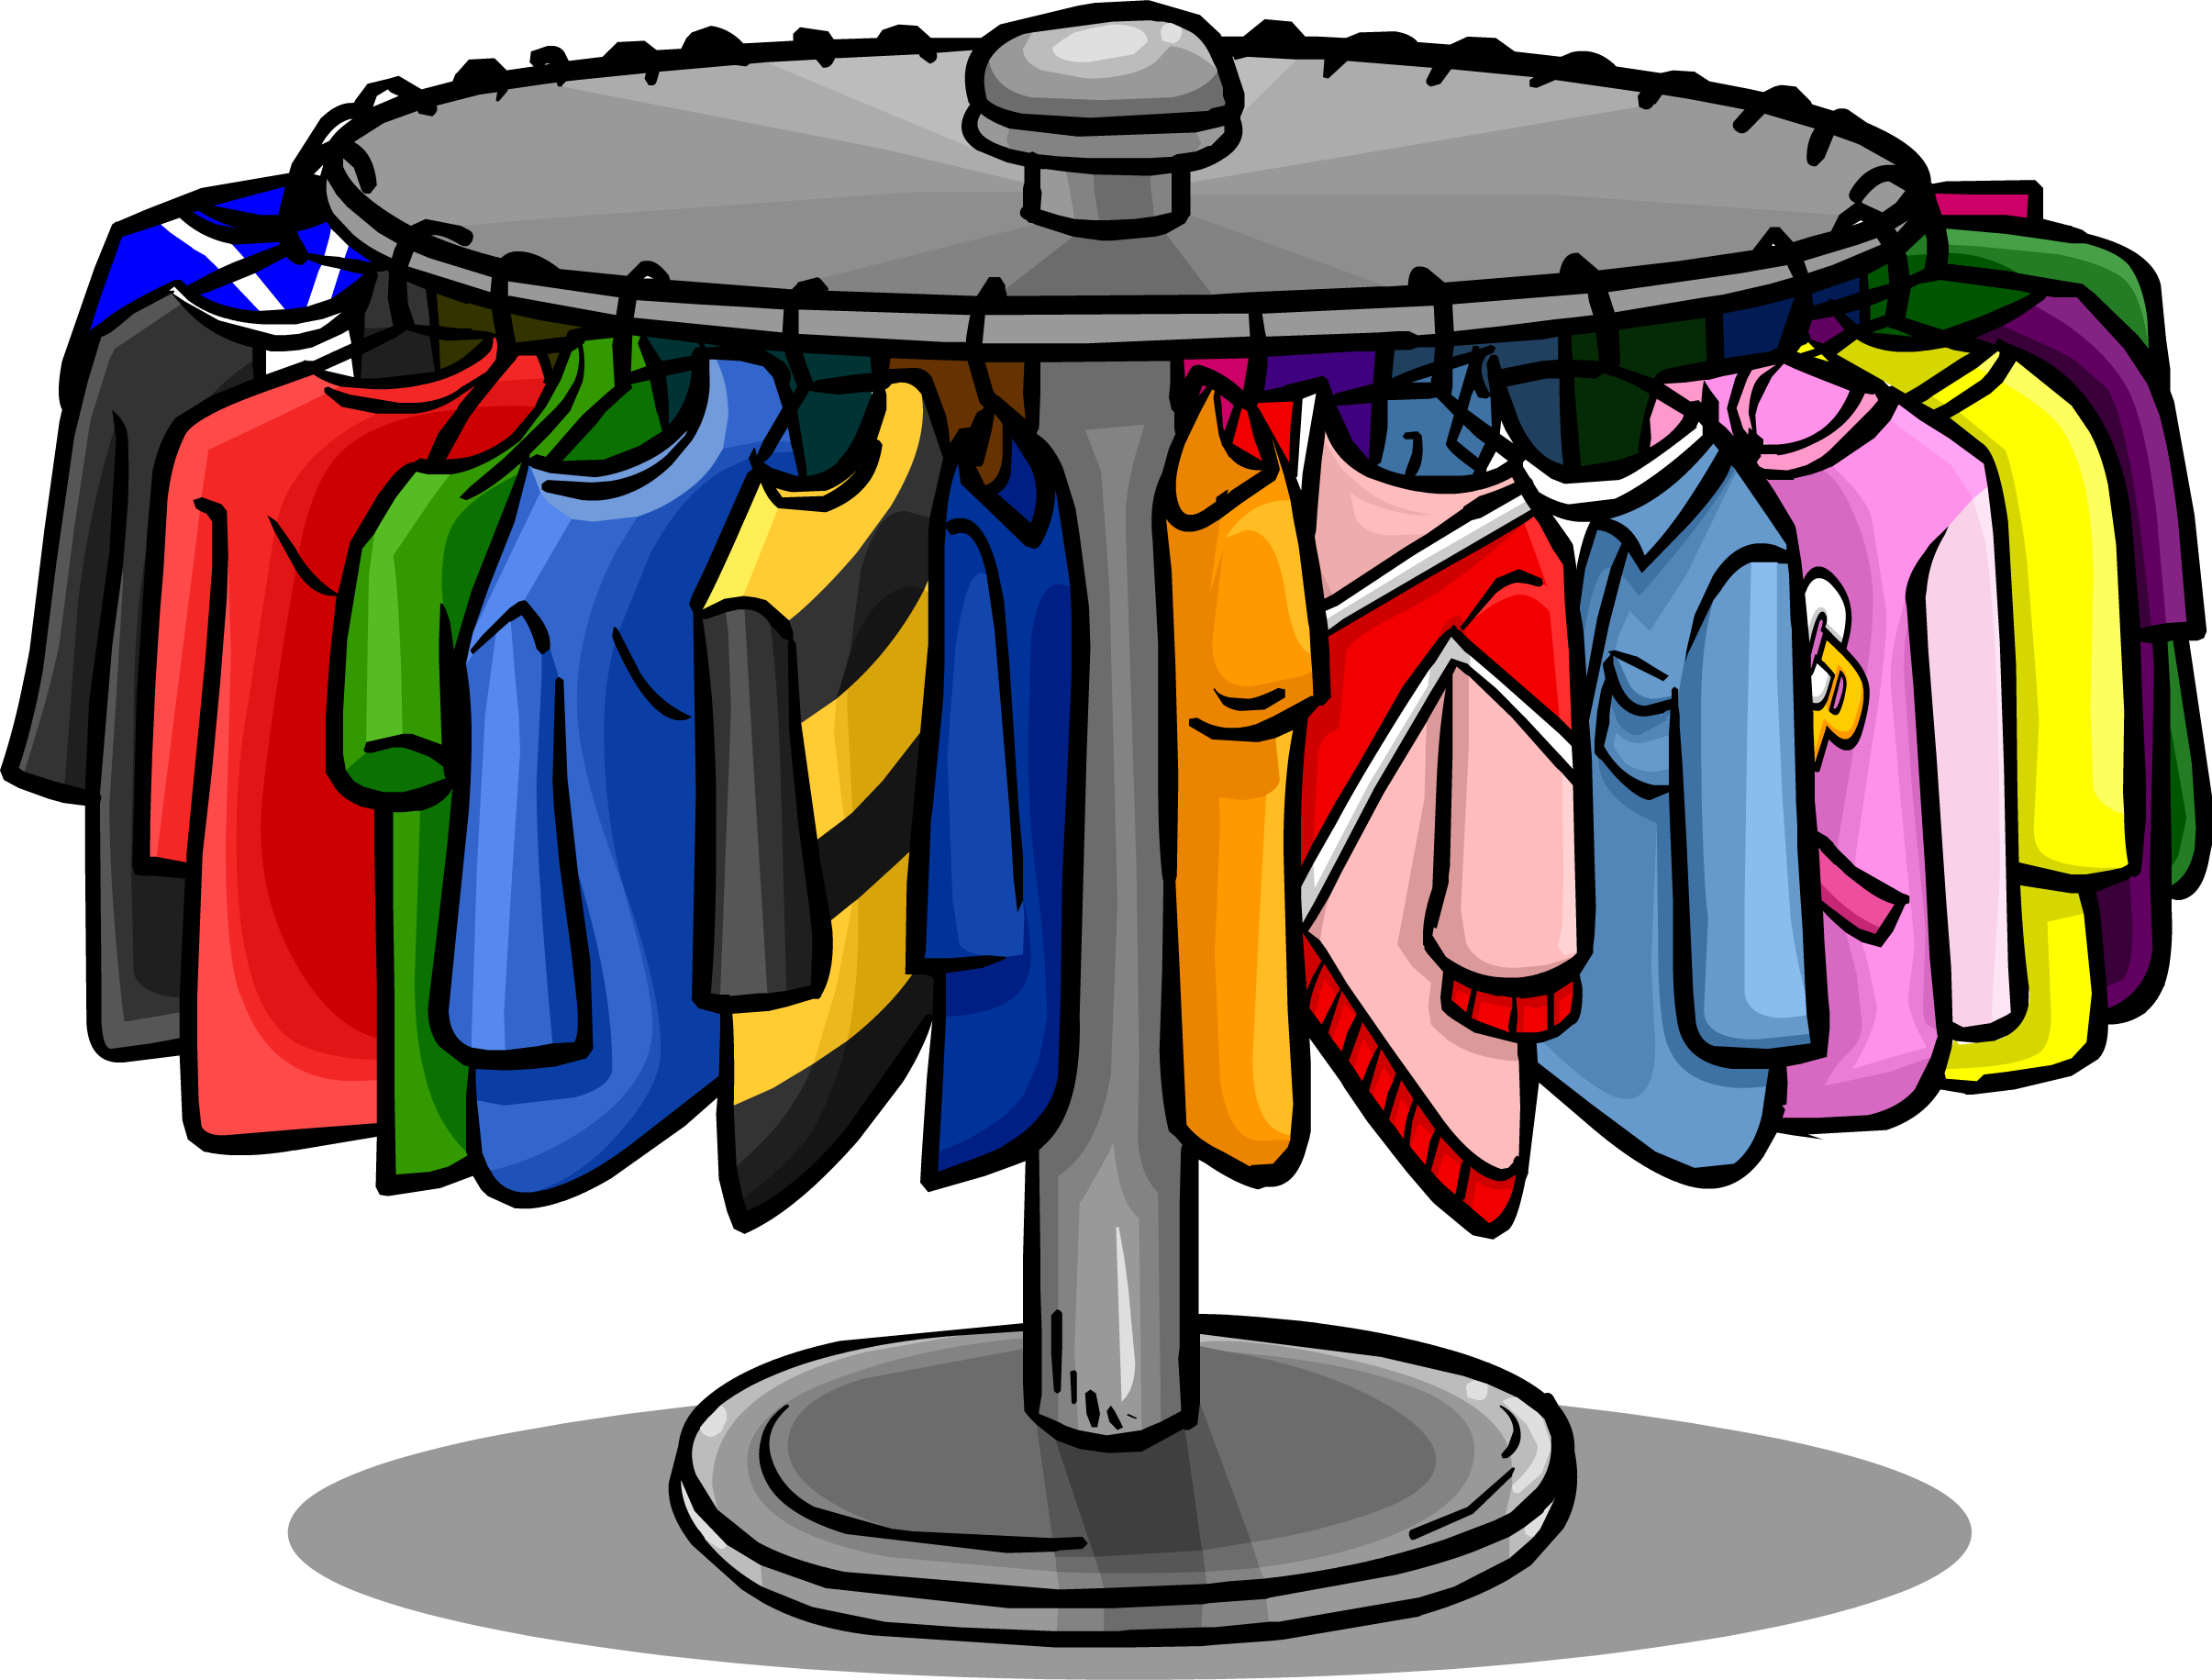 Closet filled with food clipart picture royalty free download Food Pantry & Clothing Closet – New Heart United Methodist Church picture royalty free download